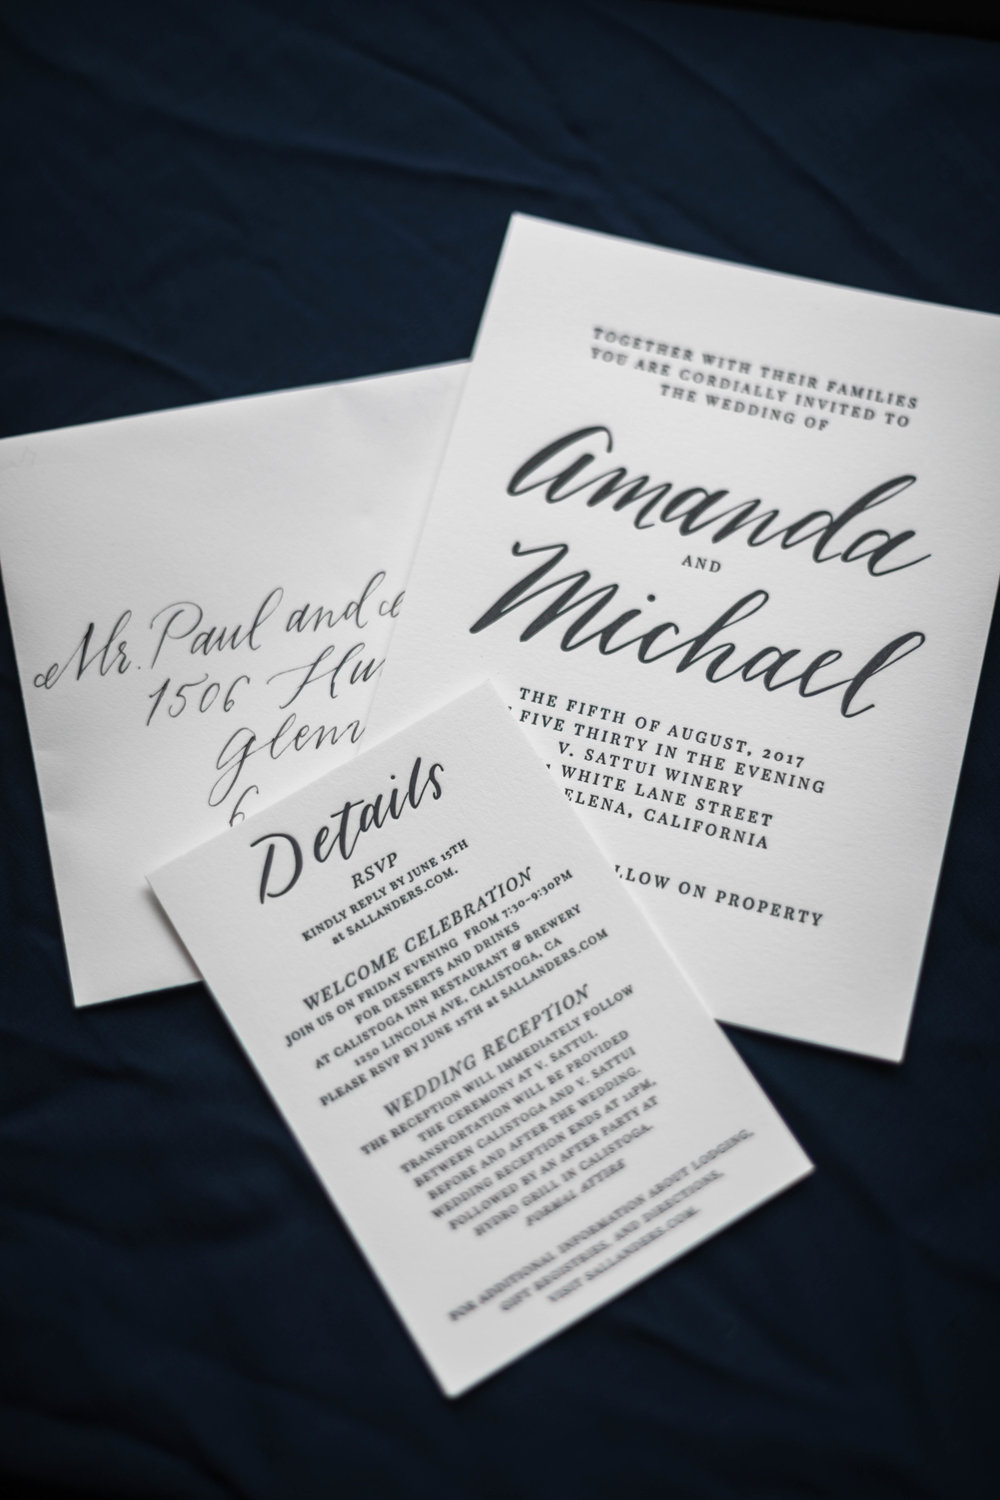 Navy blue custom wedding invitation by letterpress printer Four Hats Press in Chicago